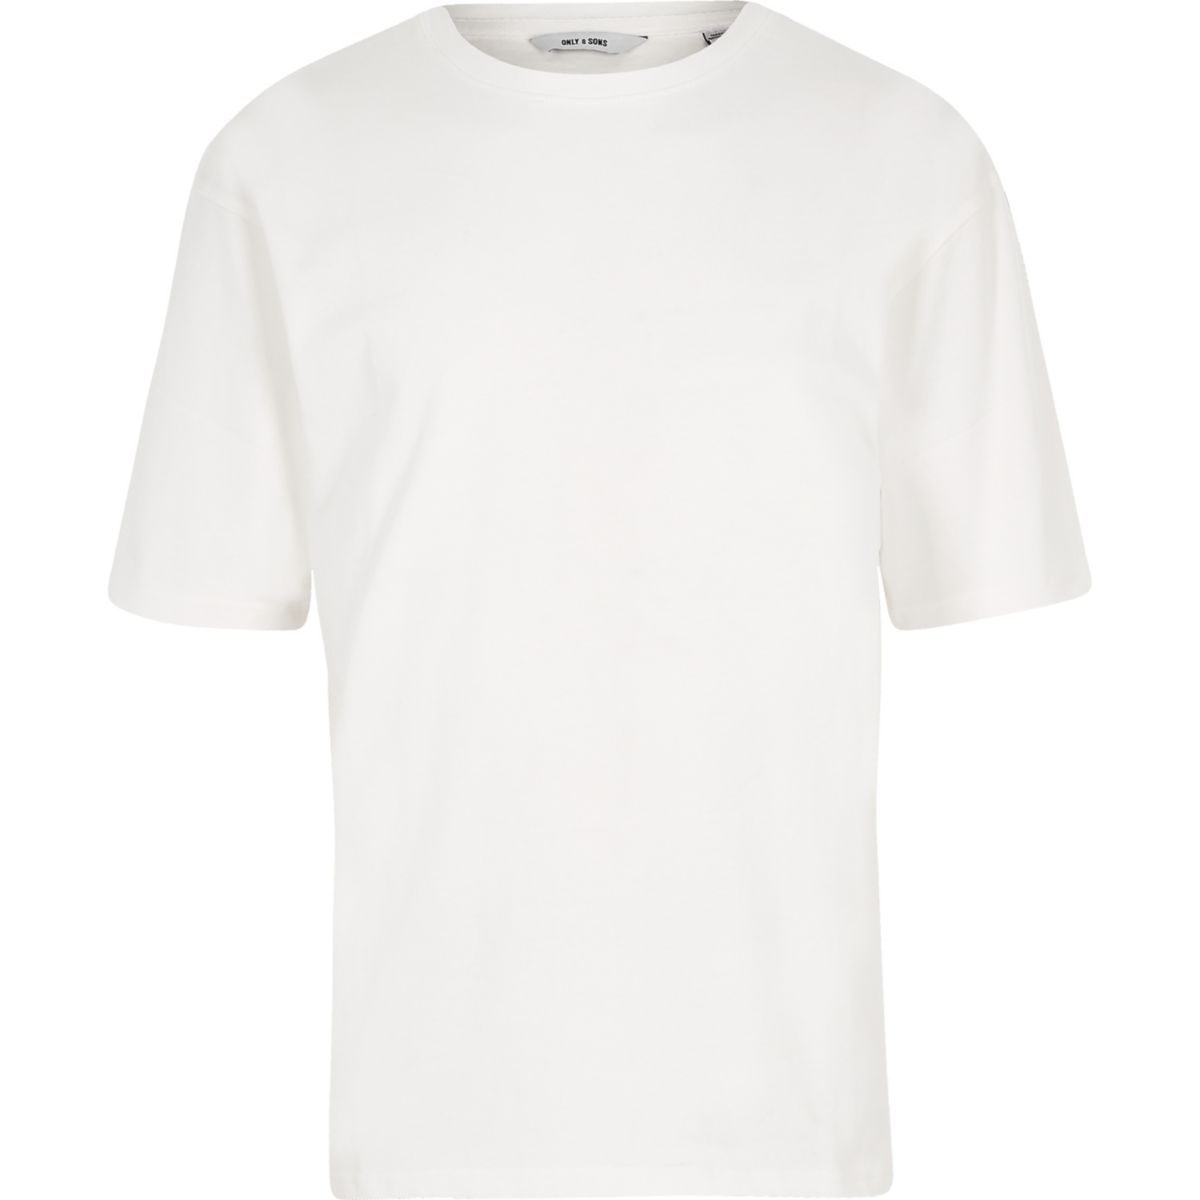 Only & Sons white short sleeve sweatshirt